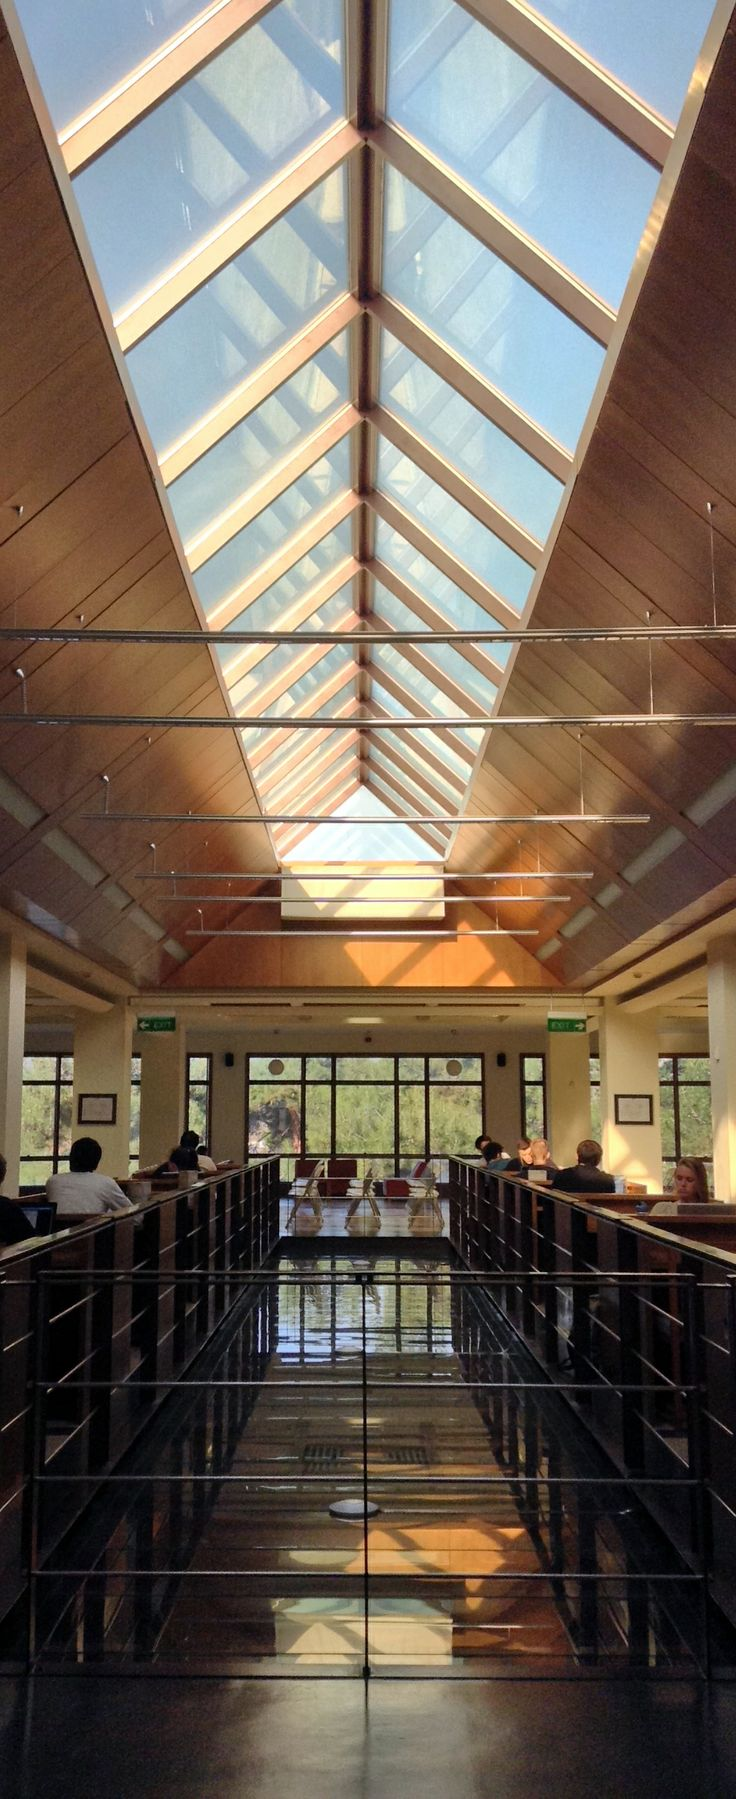 Bissell Library http://library.act.edu